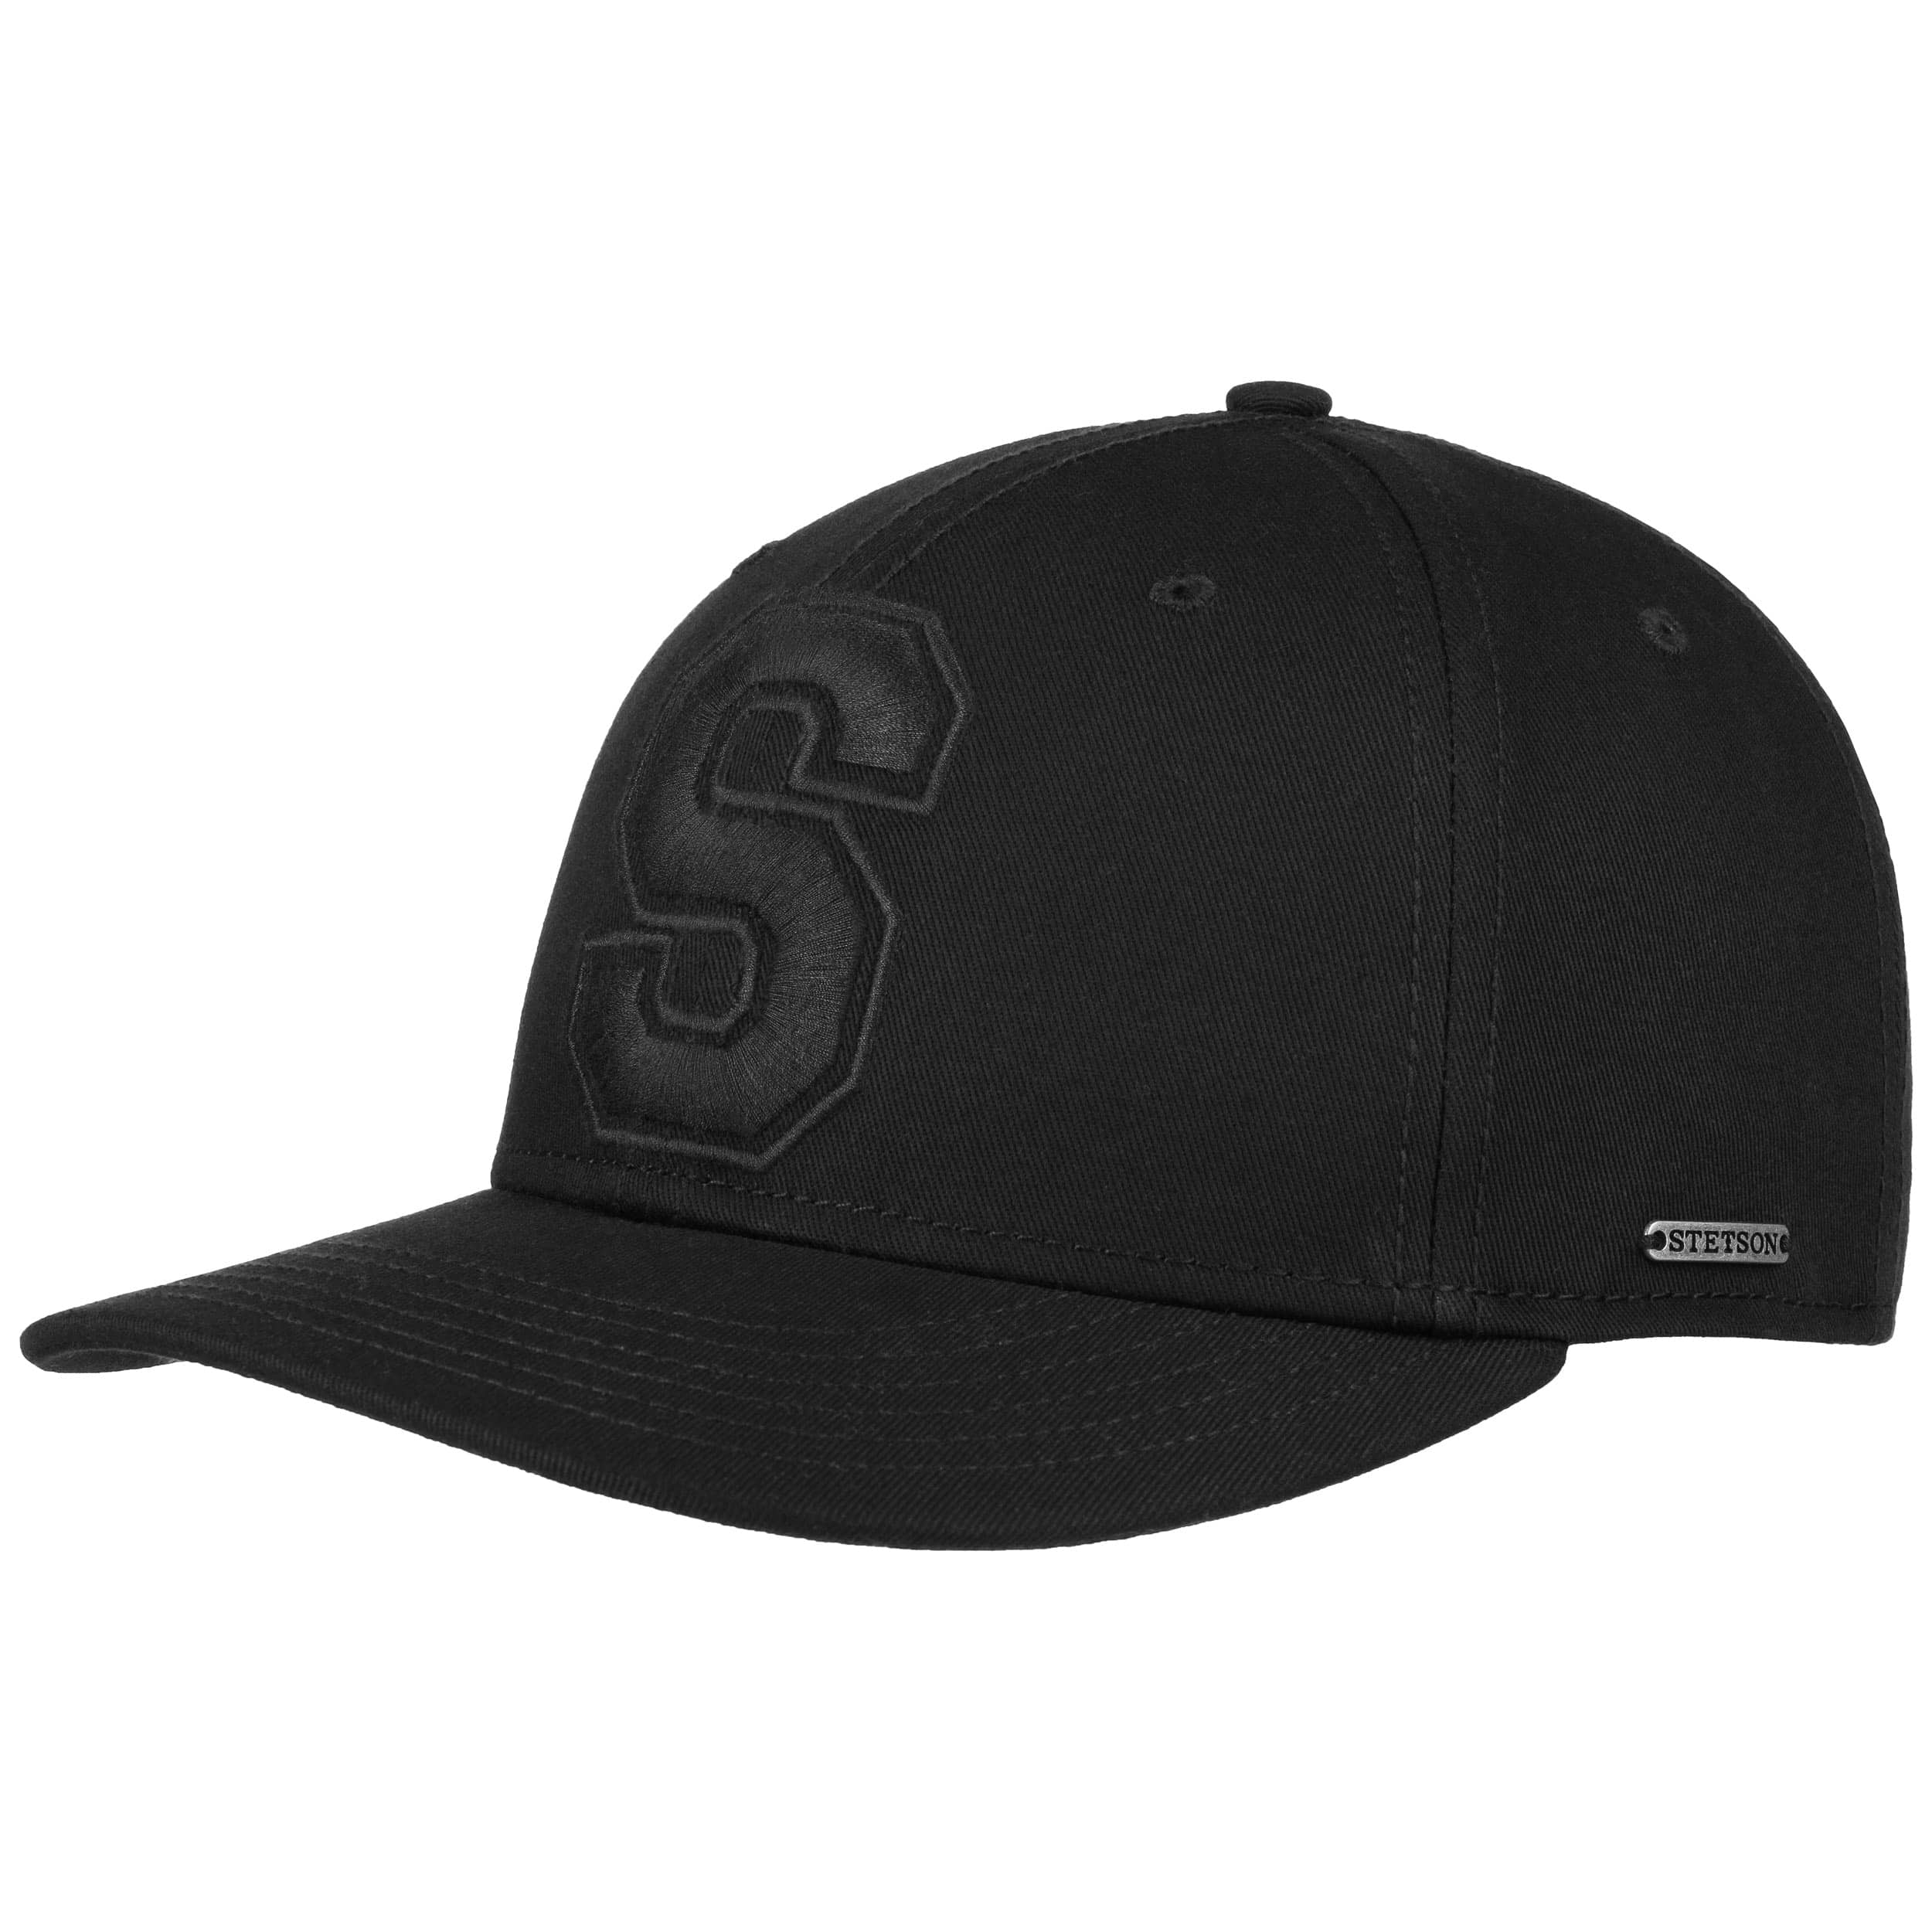 a06be78fae43 ... Capital S Cotton Baseball Cap by Stetson - black 5